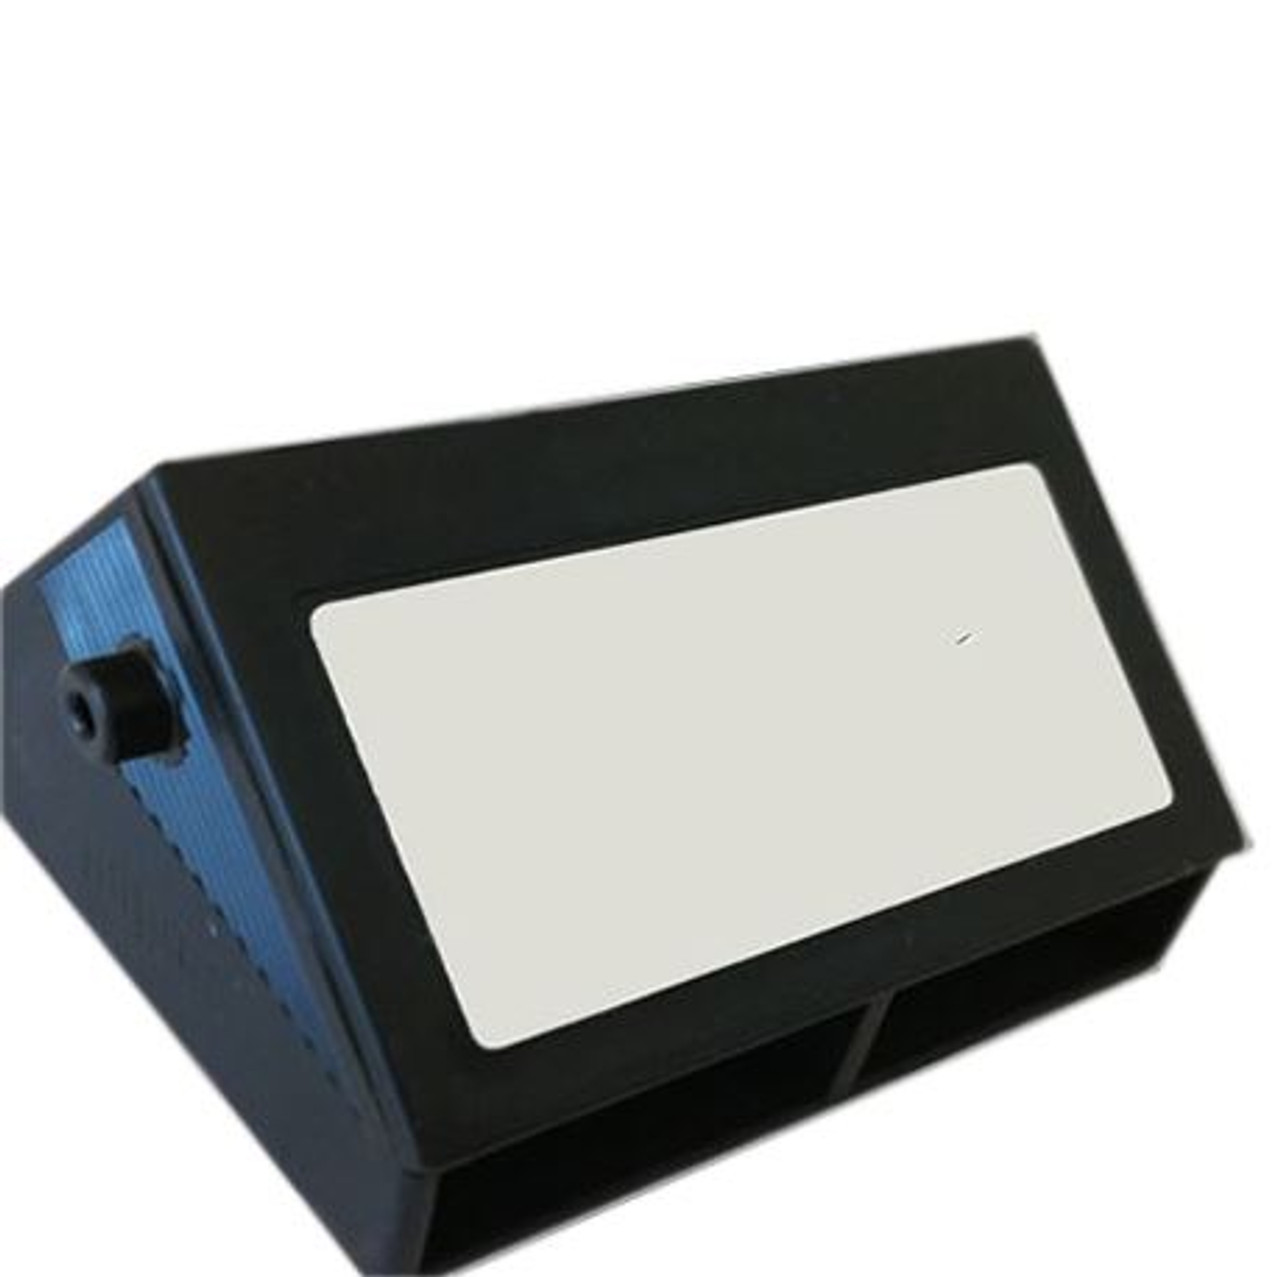 Compatible Pitney Bowes E700 - E725 Franking Ink Cartridge